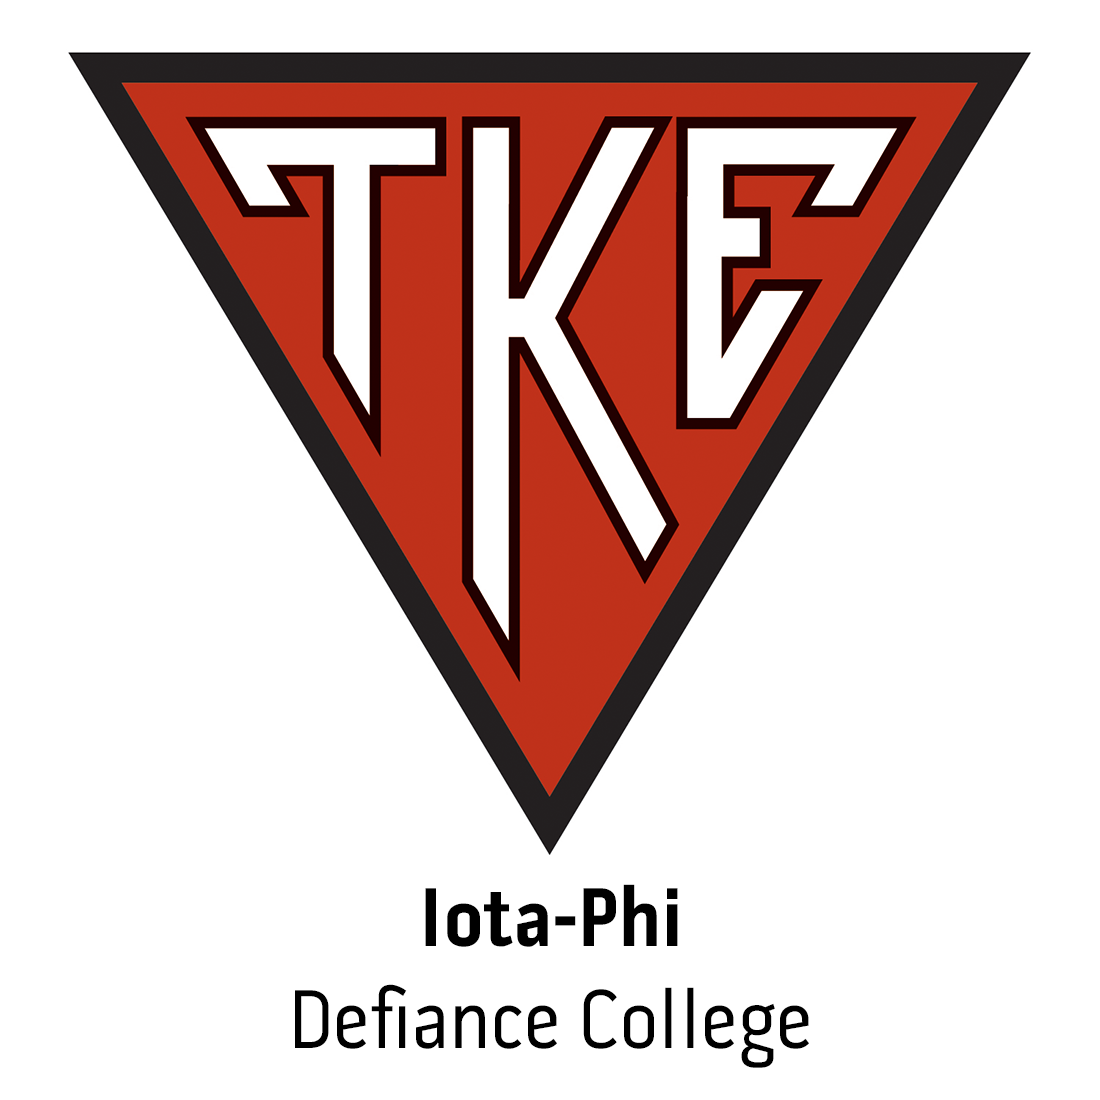 Iota-Phi Colony at Defiance College